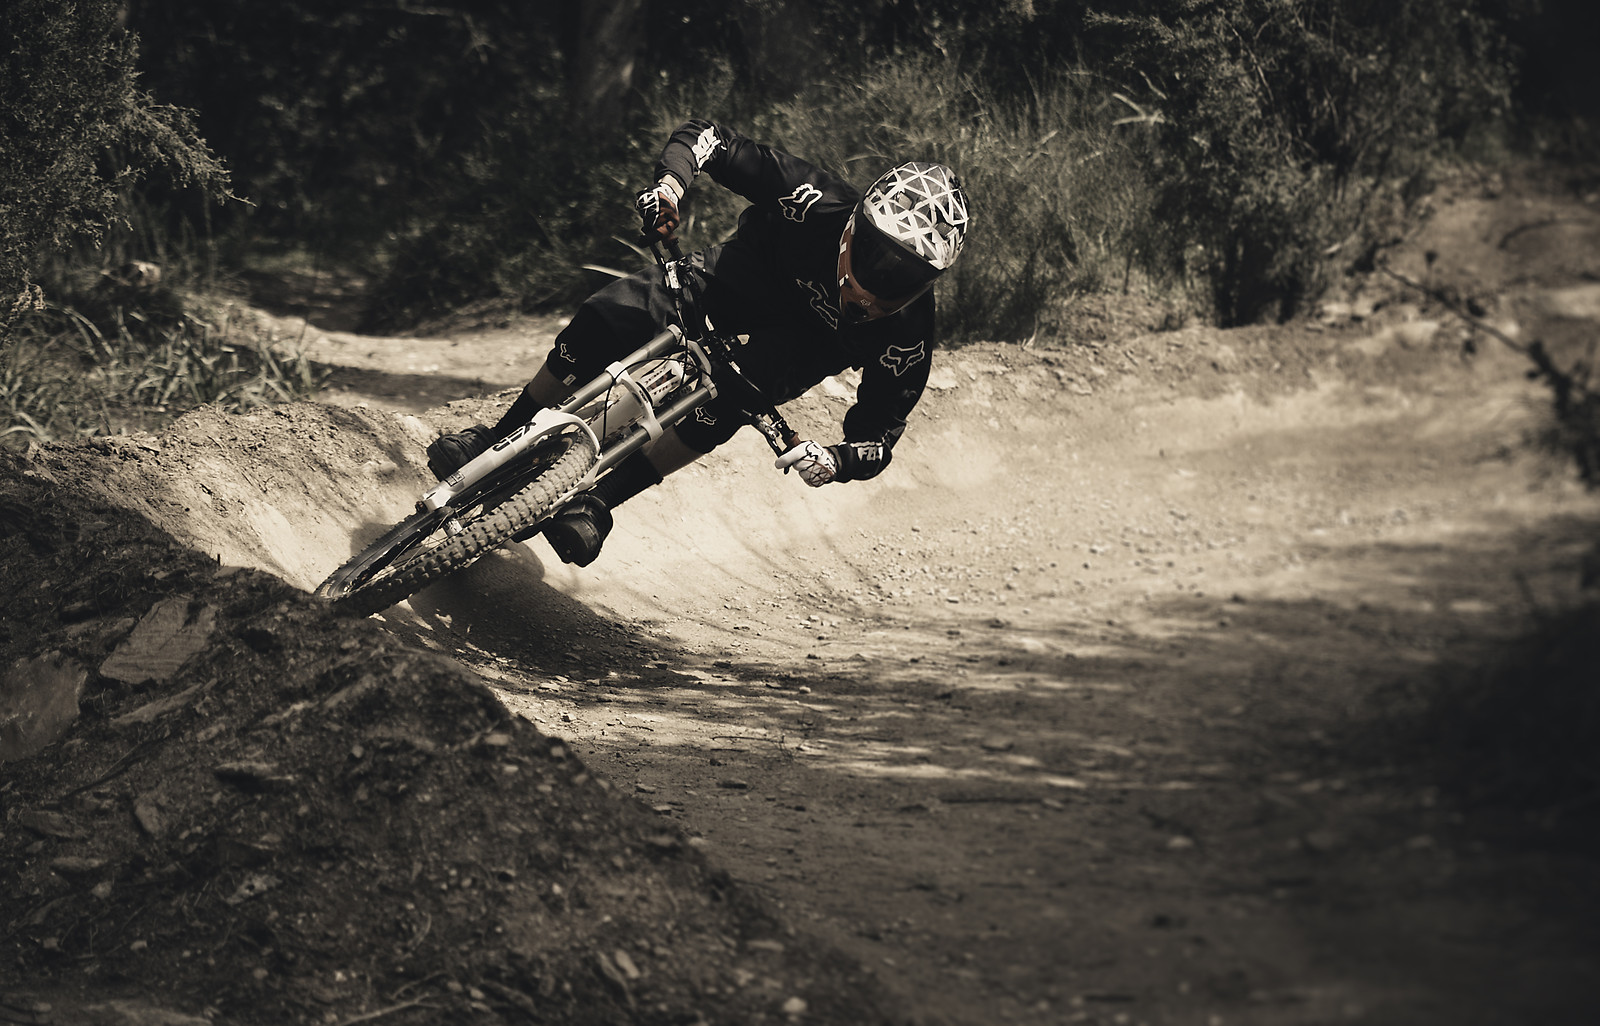 Stamatis on the Burm - pappoulakos - Mountain Biking Pictures - Vital MTB